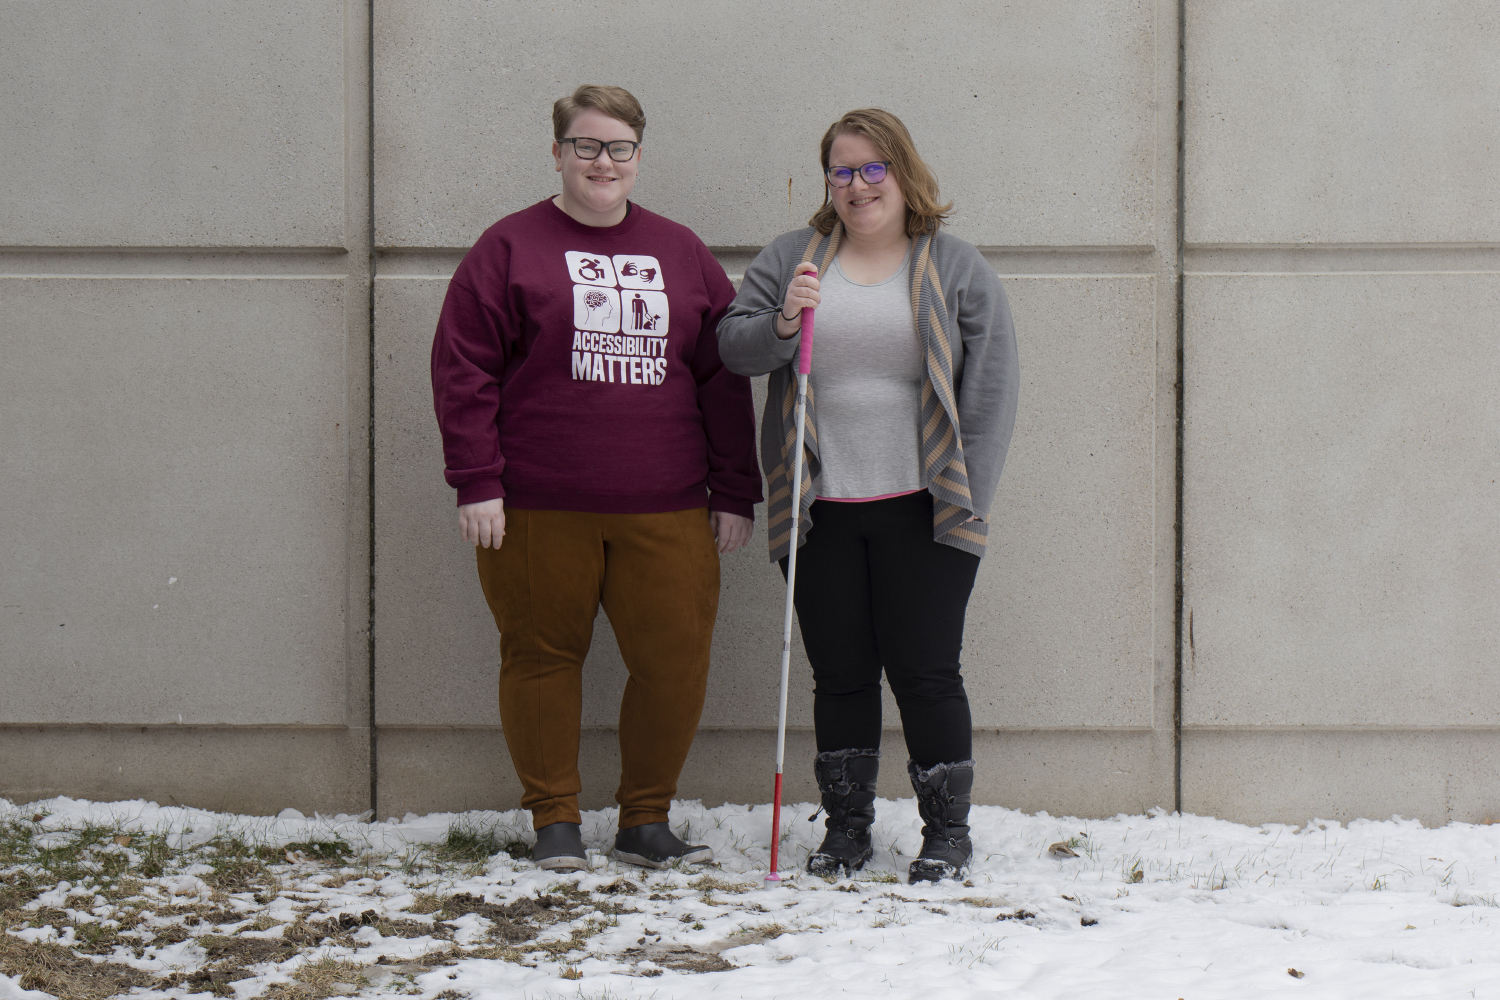 UI Students for Disability Advocacy & Awareness President-elect Kaydee Ecker (left) and President Andrea Courtney pose for a portrait on Wednesday, Nov. 28, 2018. A petition launched by their organization that aims to re-locate Student Disability Services by 2020 has garnered over 2,800 signatures.